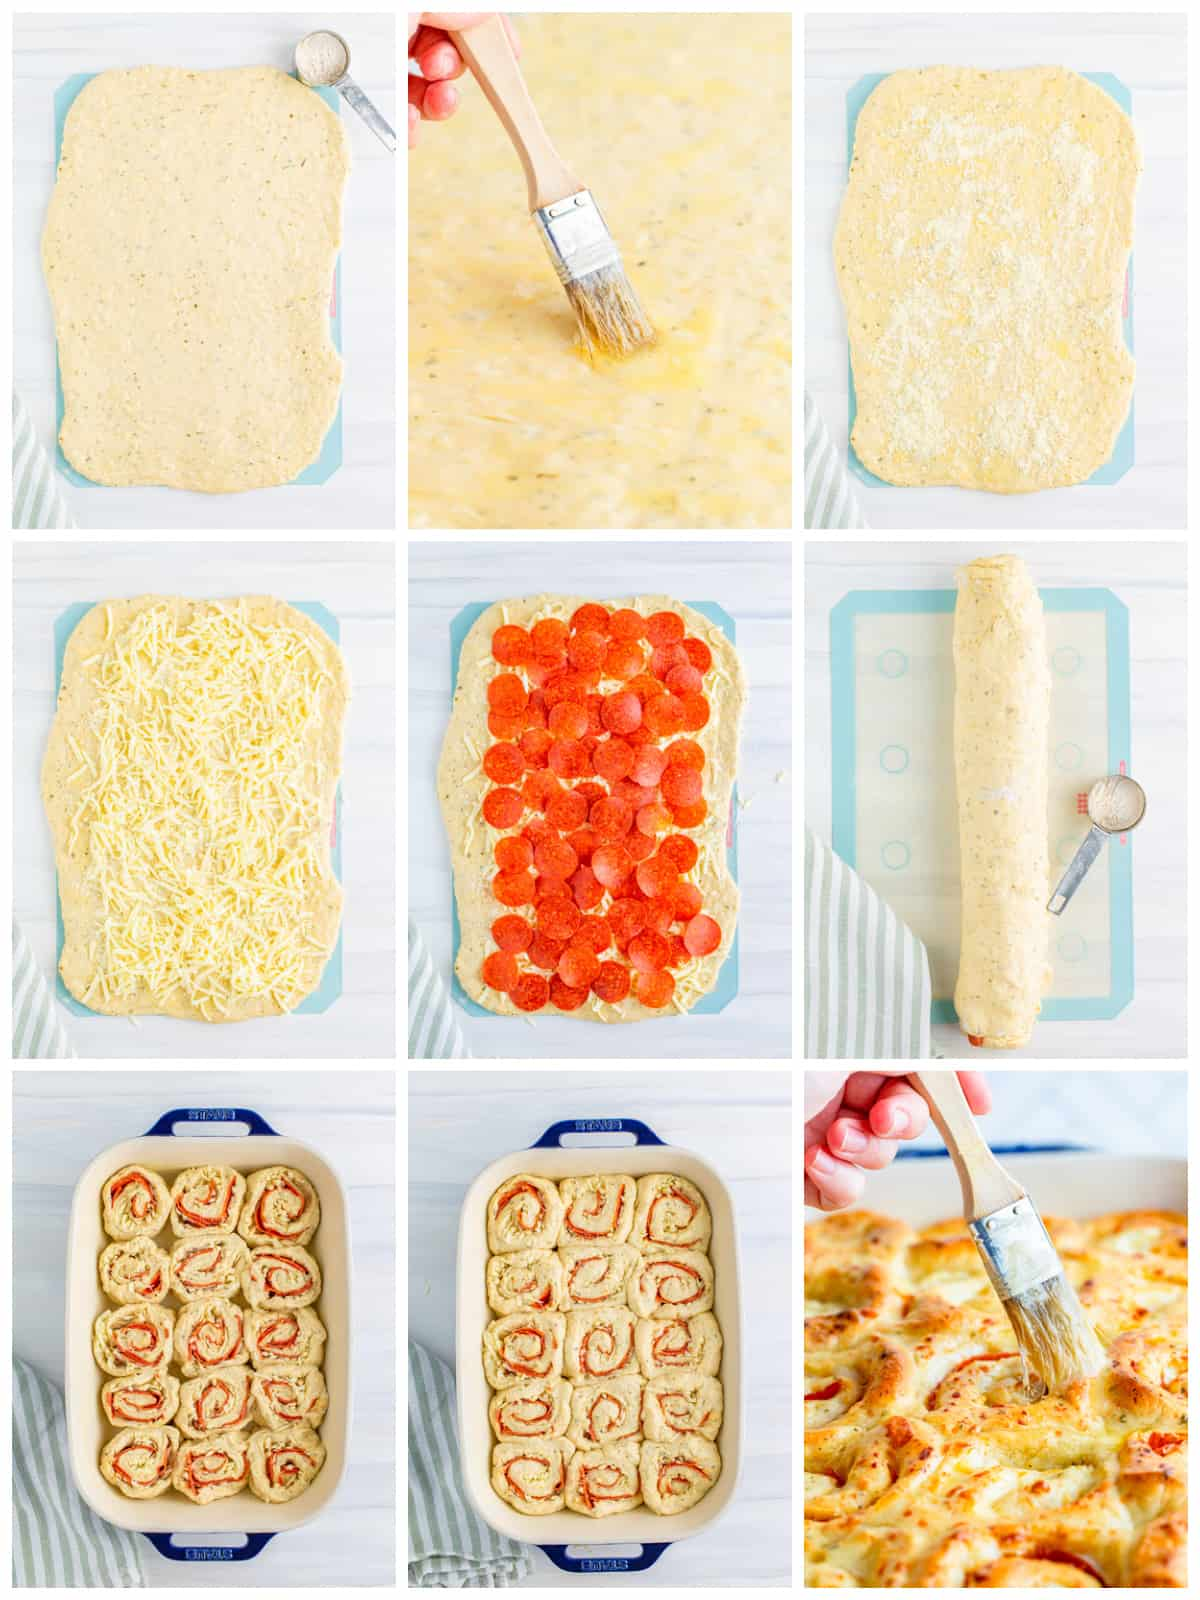 Step by step photos on how to assemble Pizza Rolls